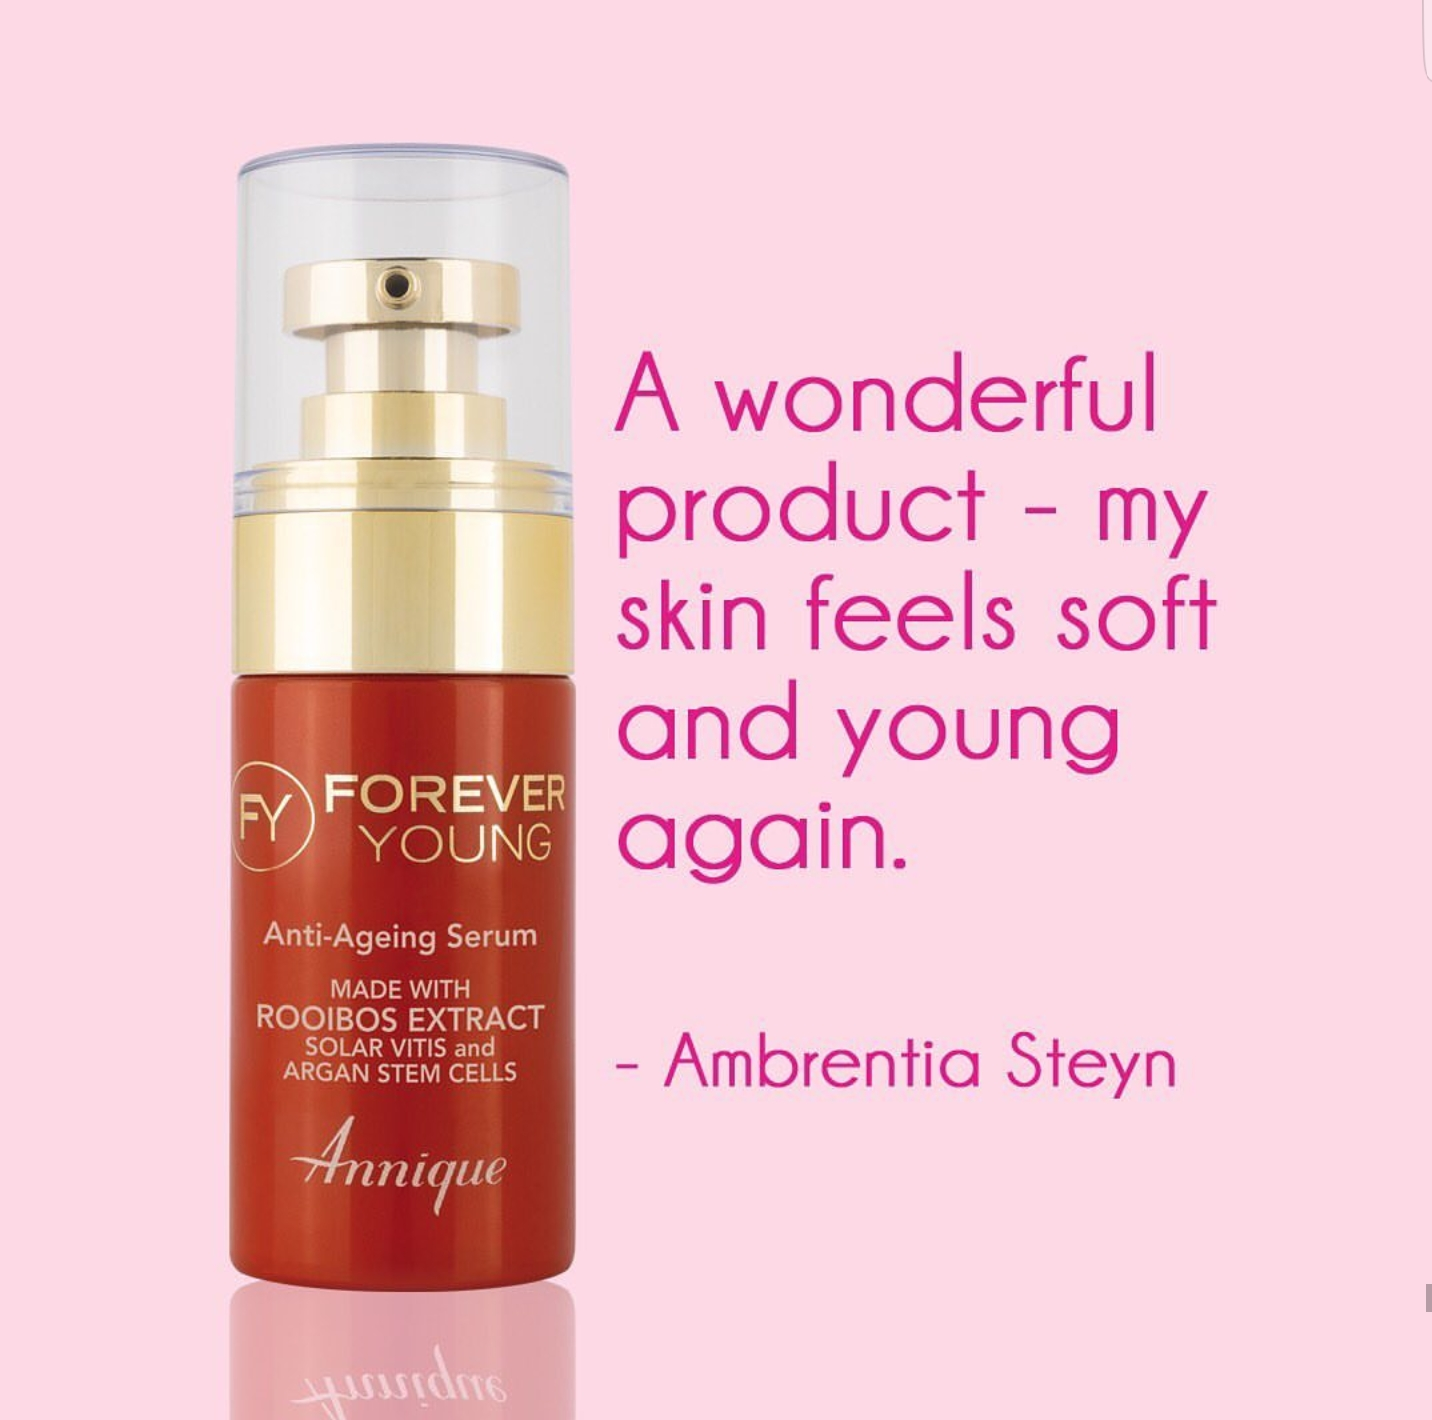 Annique Anti-Ageing Serum